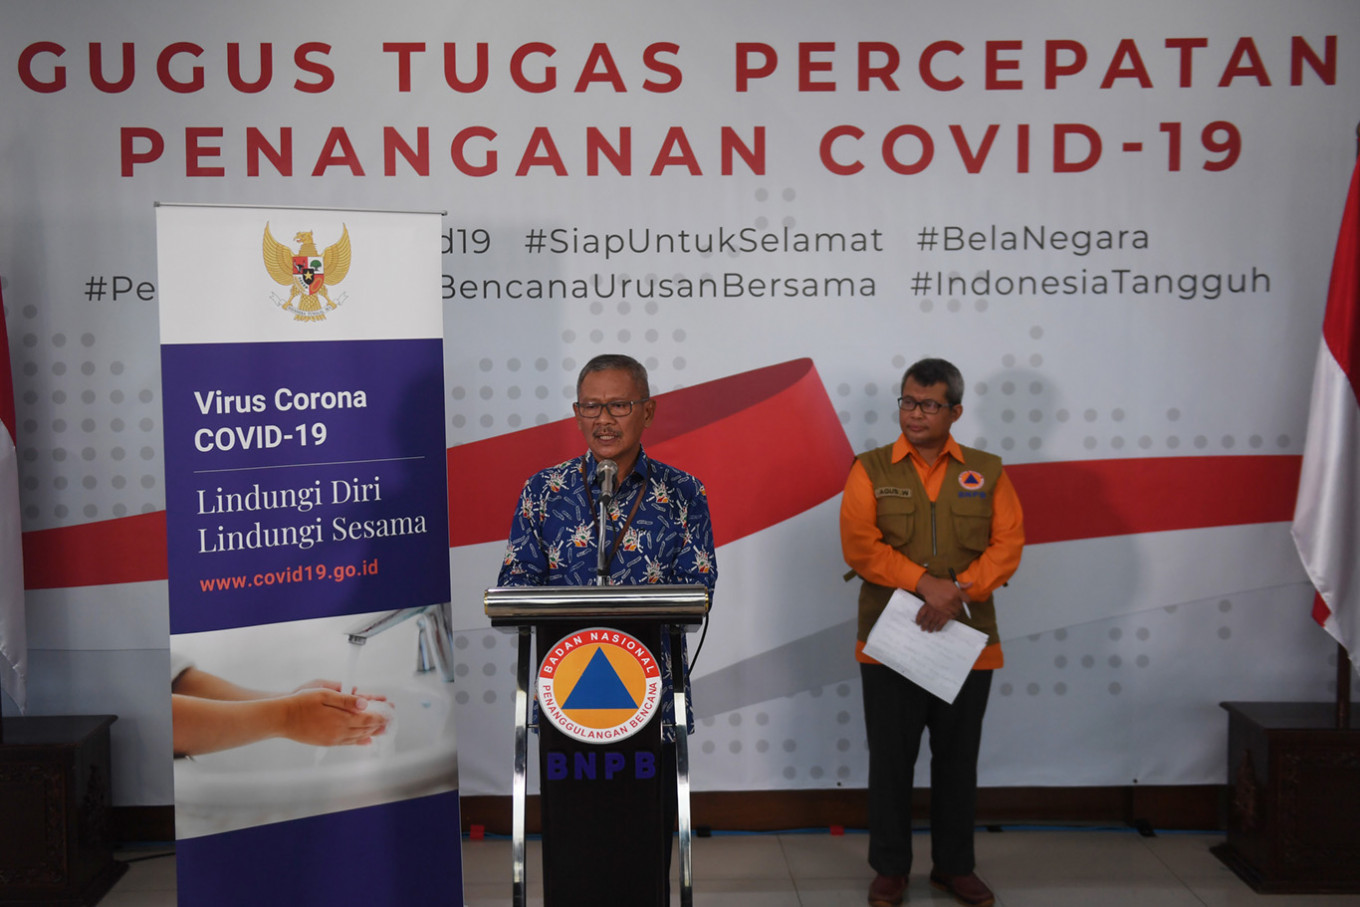 Indonesia Medical News Indonesia Covid 19 Infections Spikes As Restrictions Eases Thailand Medical News